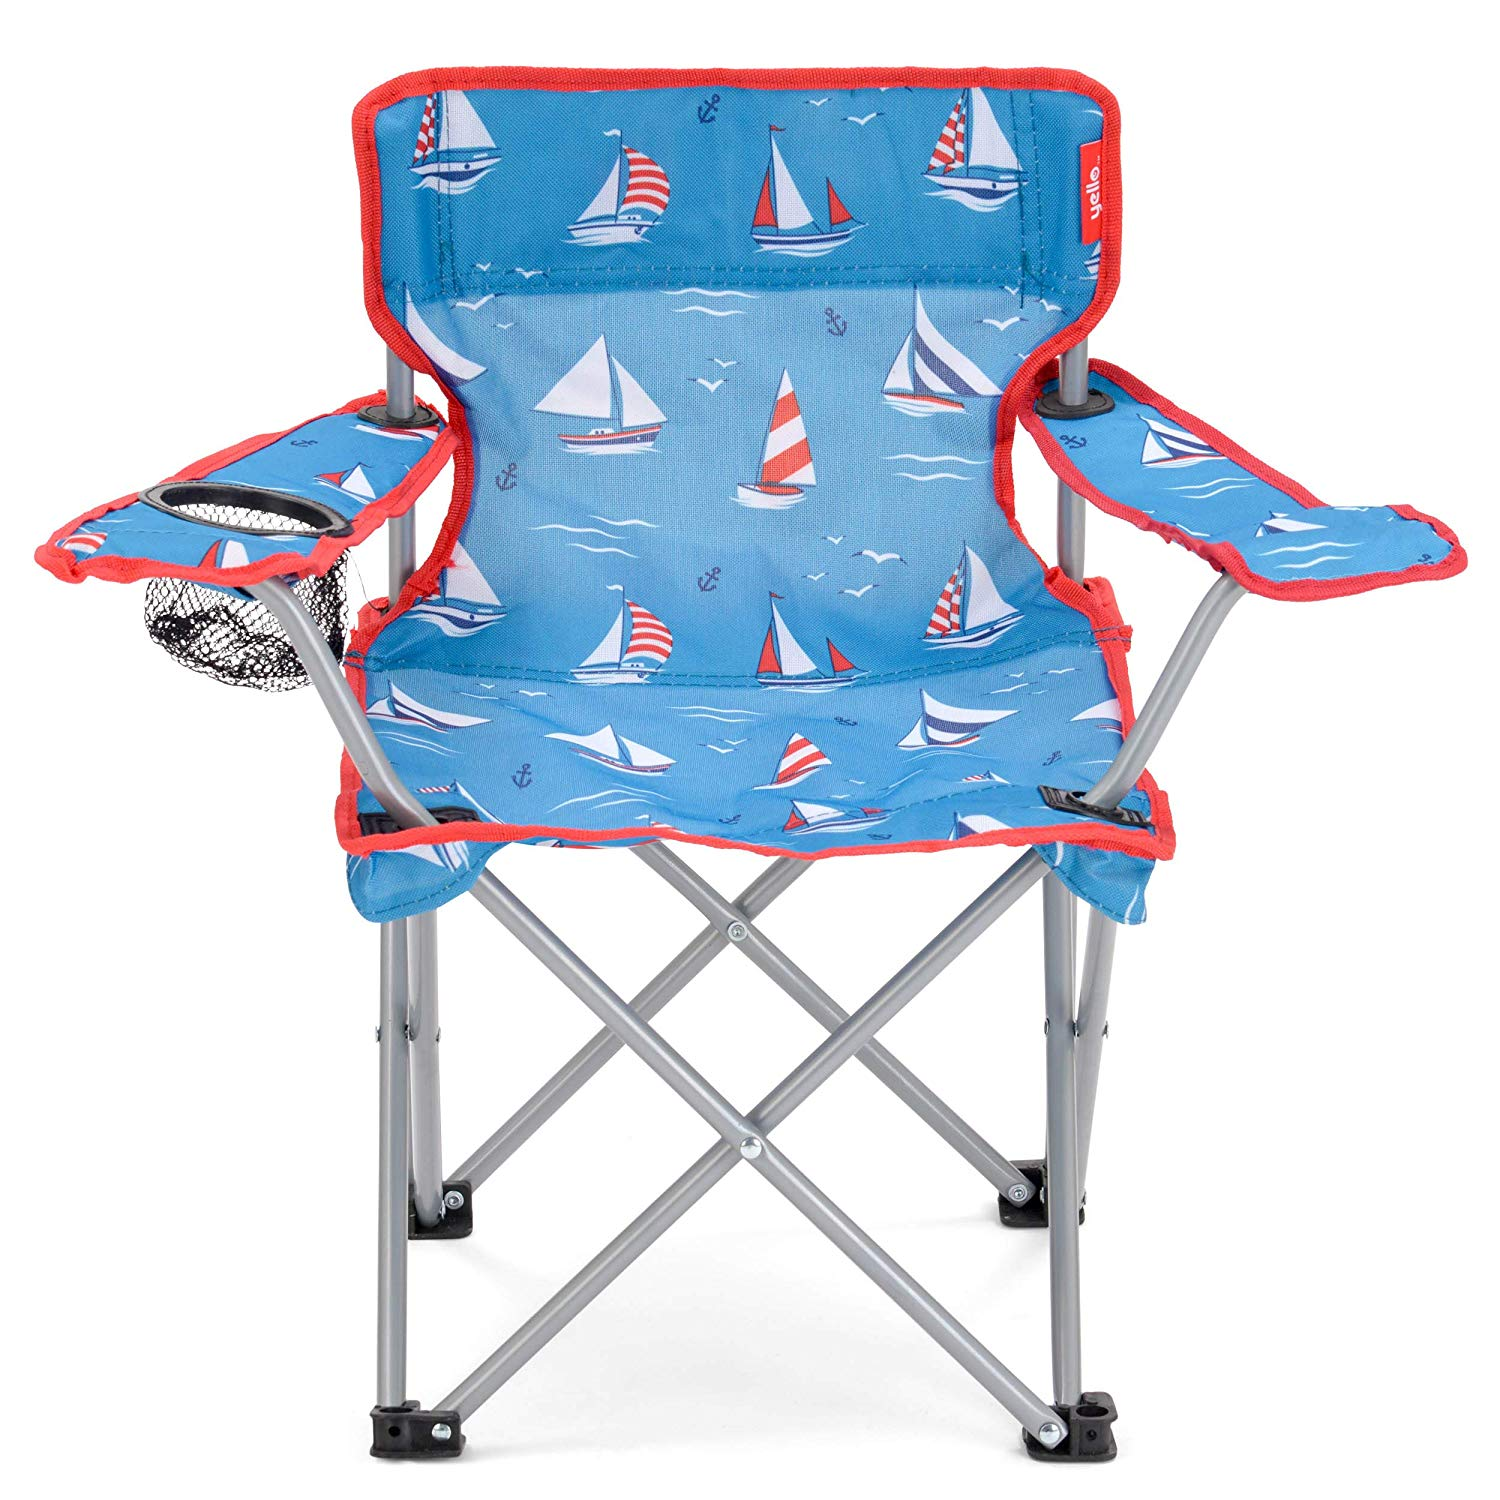 Childs Folding Camping Chair (Front View)